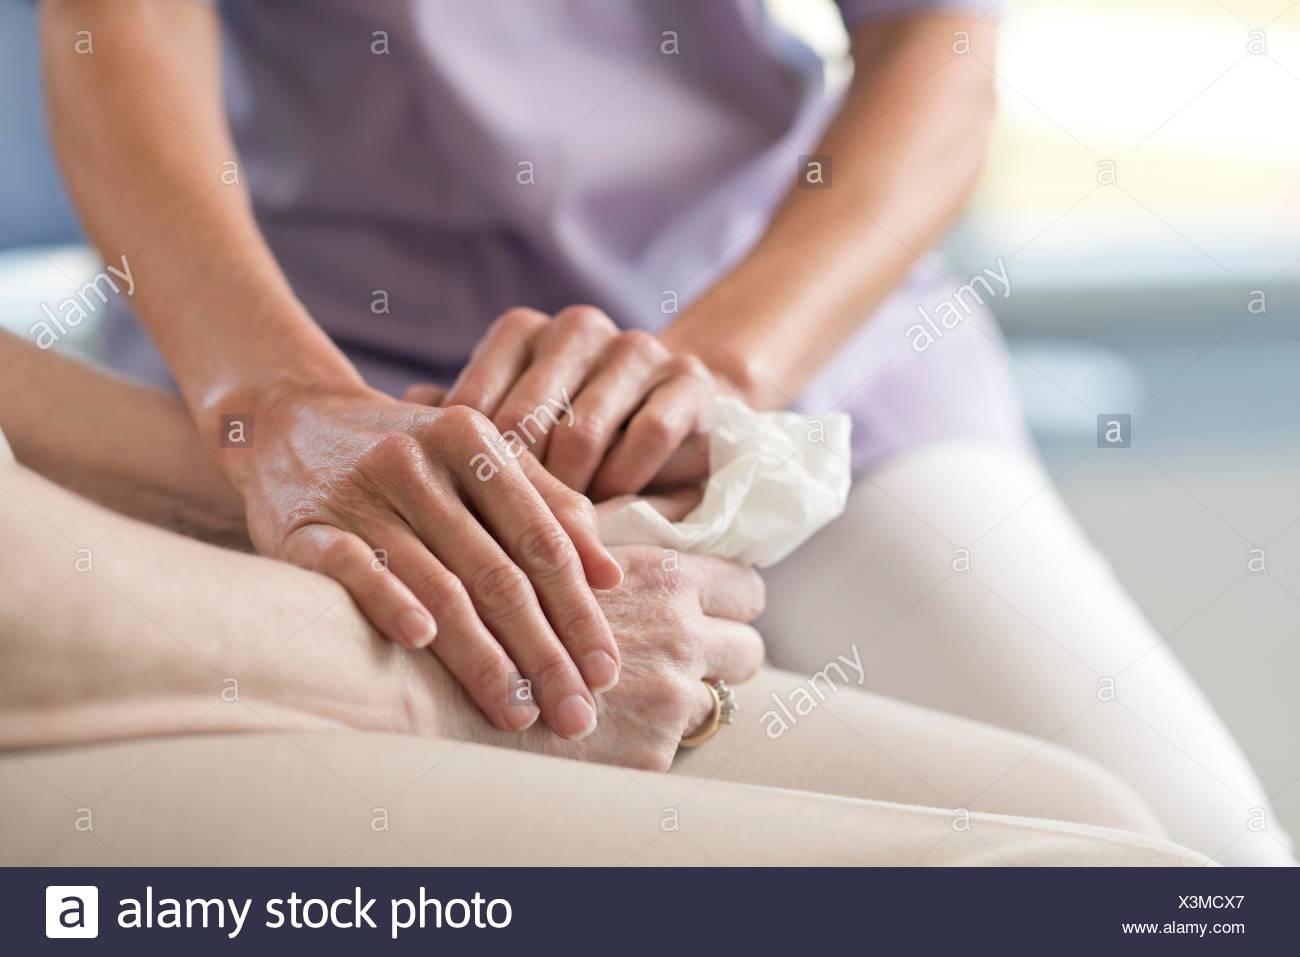 Care worker holding senior woman's hands. Photo Stock